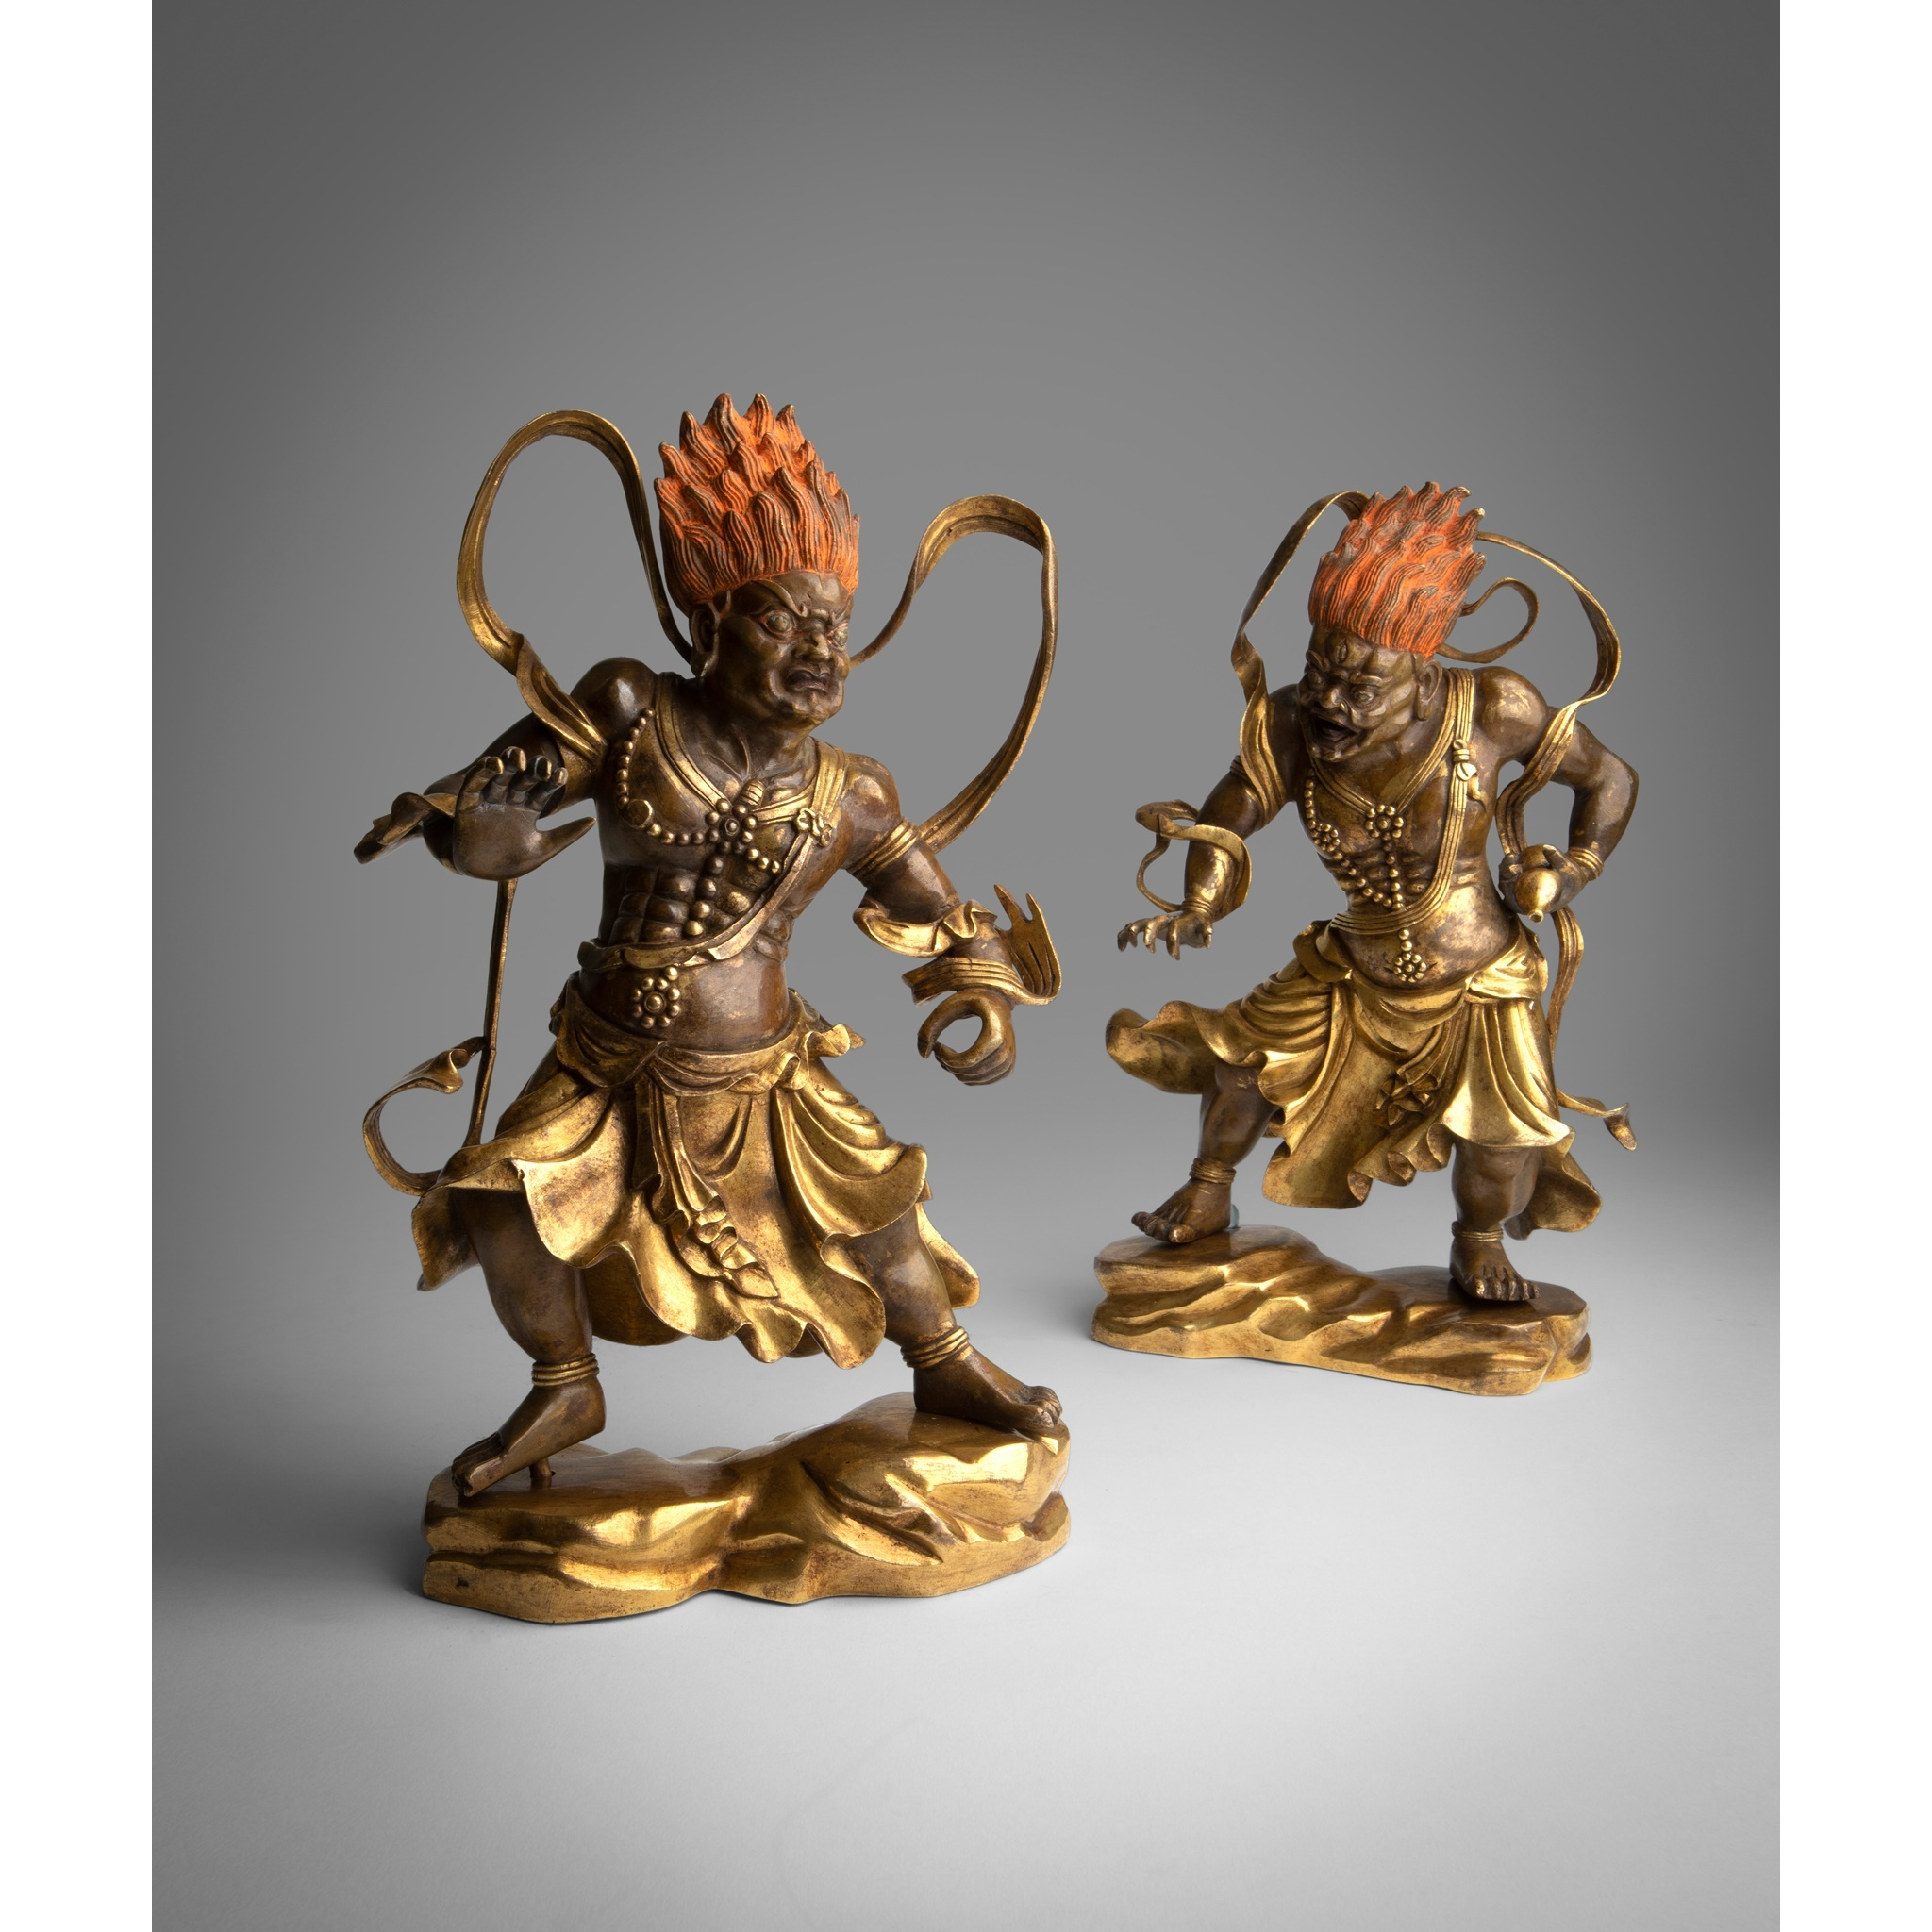 PAIR OF GILT BRONZE FIGURE OF TEMPLE GUARDIANS QING DYNASTY, 18TH CENTURY